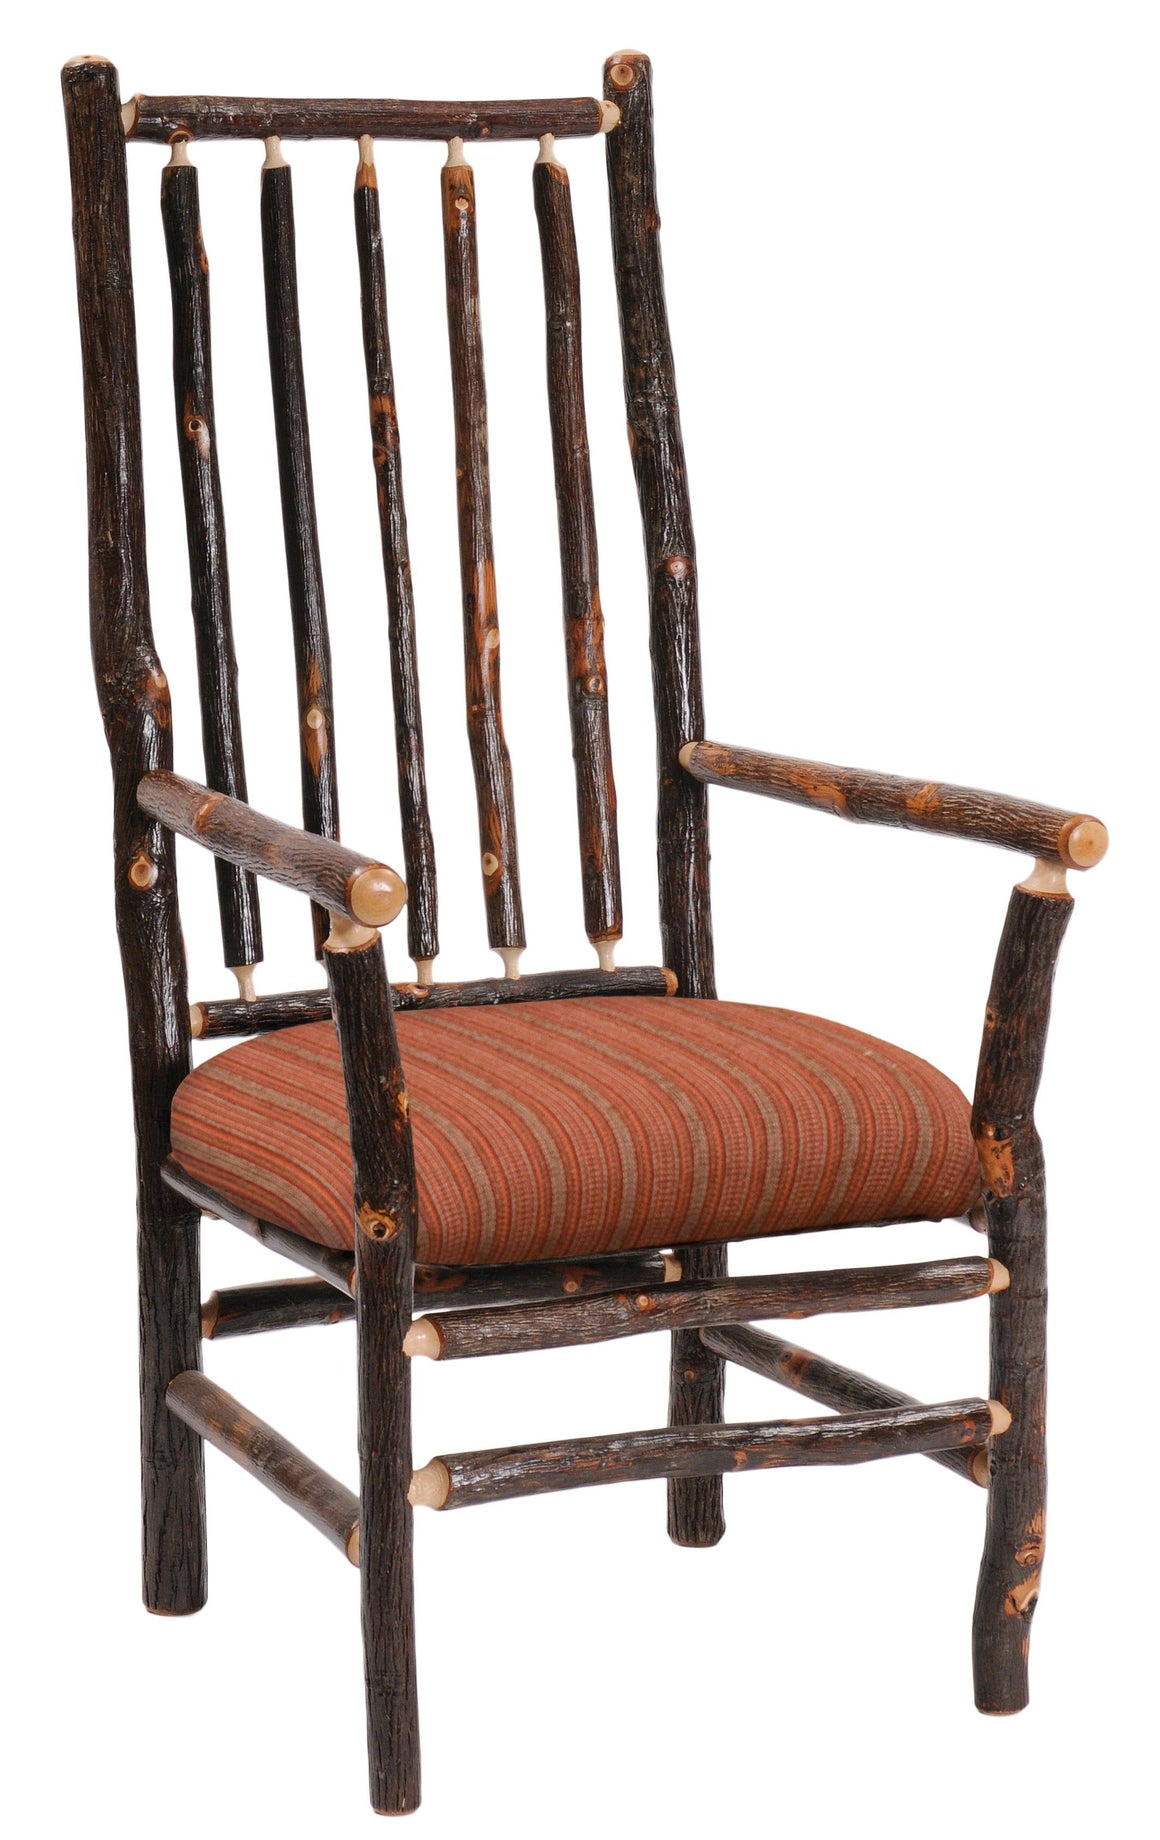 Natural Hickory Log High-back Spoke Arm Chair - Upholstered Seat - Standard Finish Chair Fireside Lodge Customer's Own Material